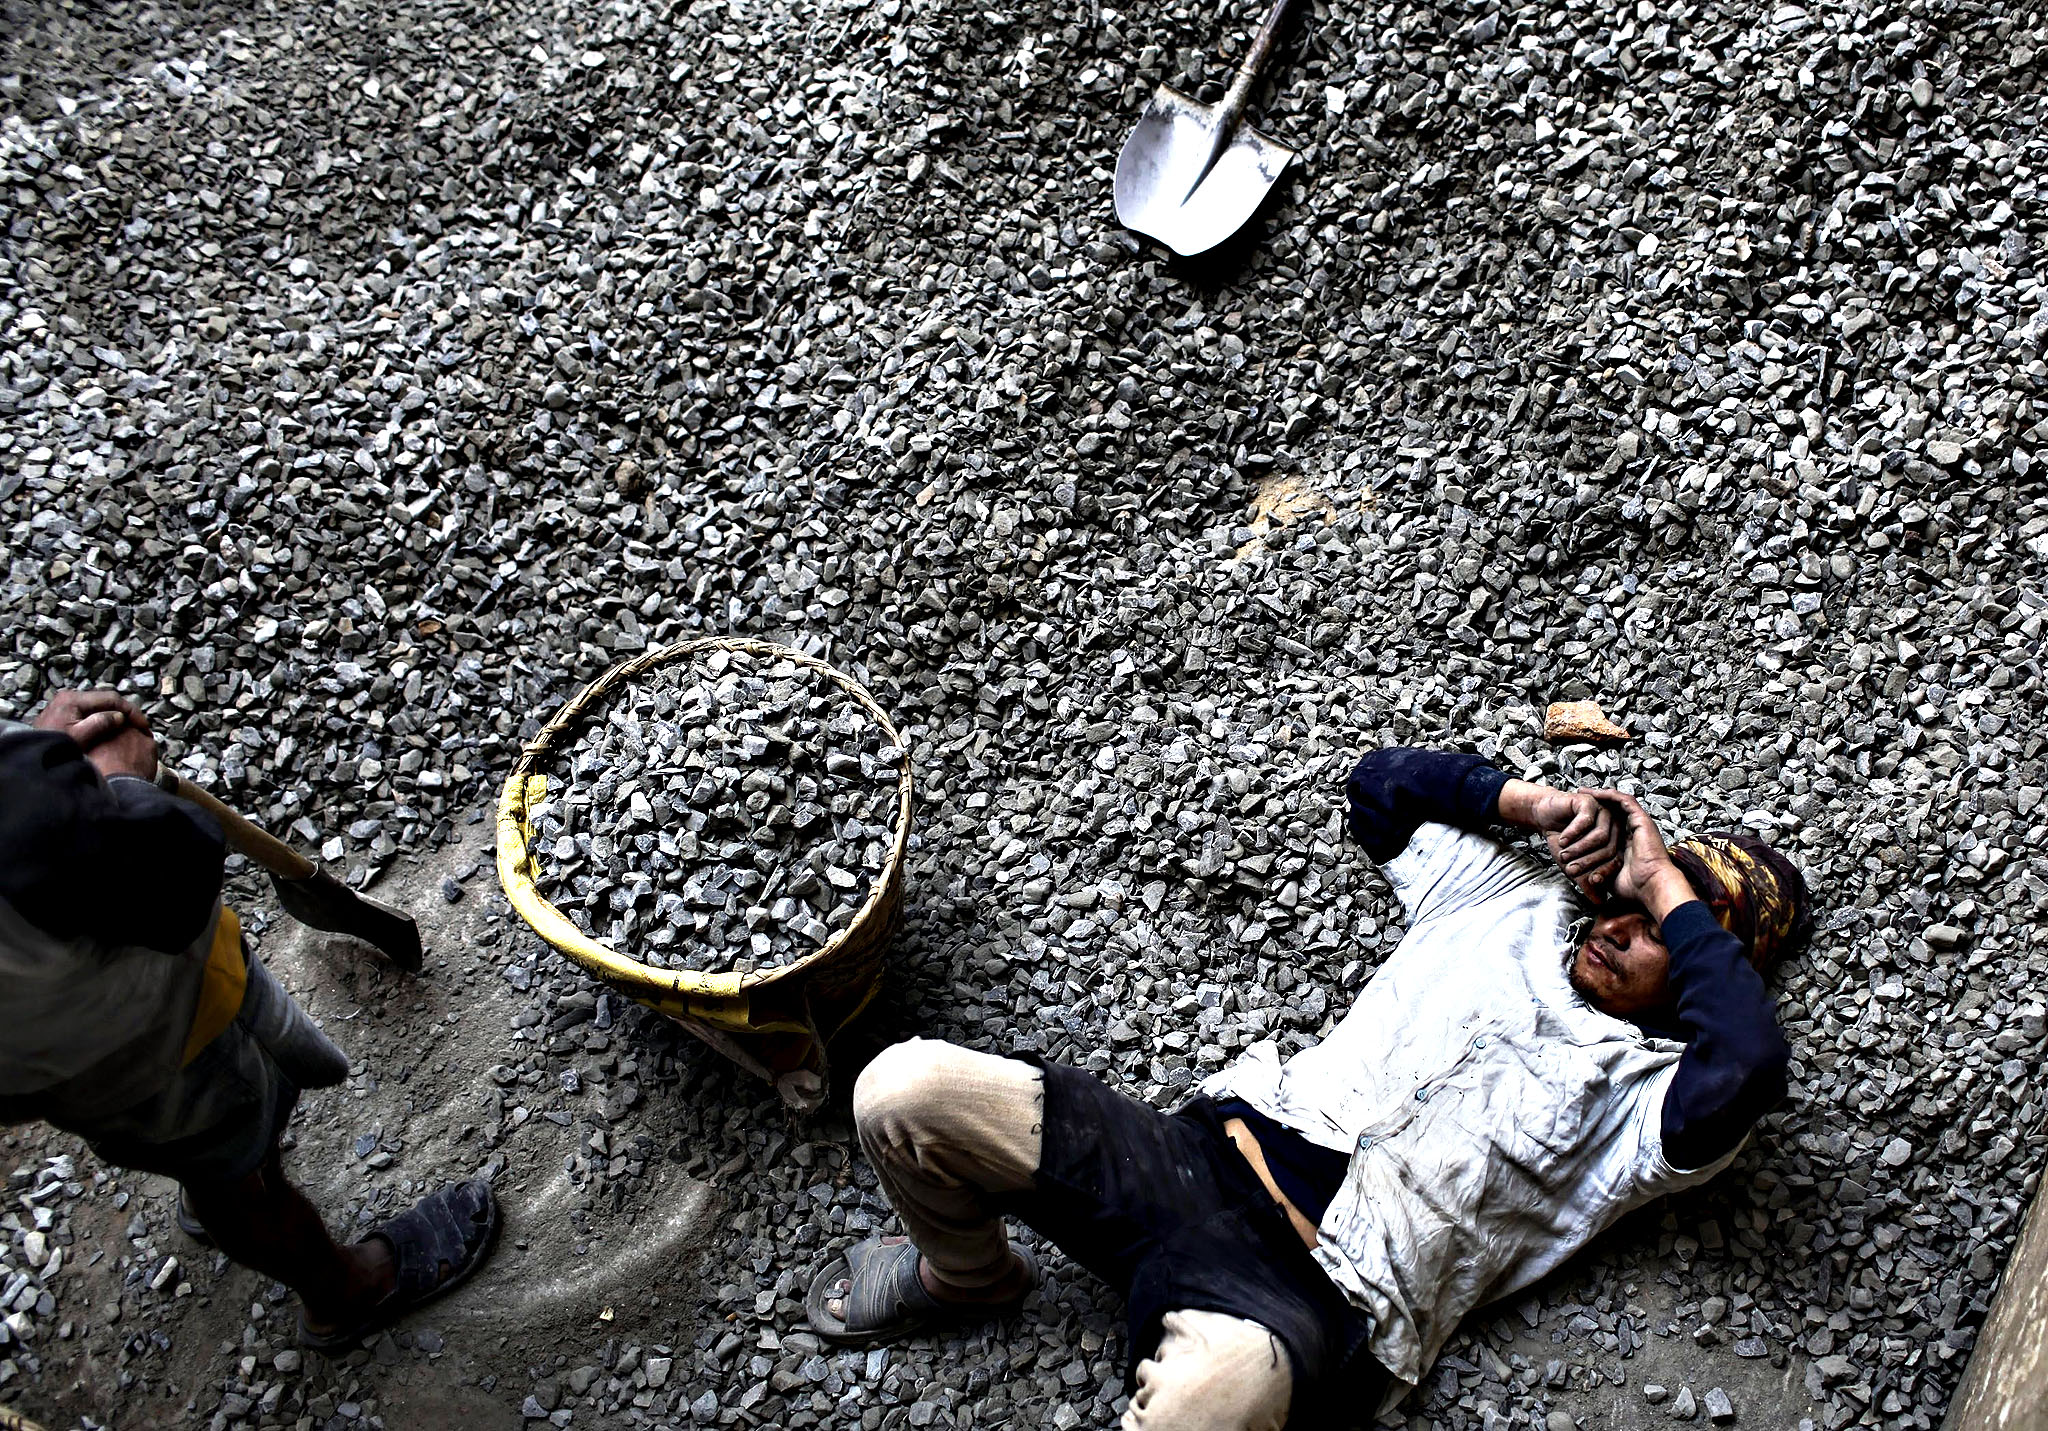 A Nepalese domestic worker rests at a construction site in Kathmandu, Nepal, 16 December 2013. According to reports, more than 300,000 Nepalese youth leaving the country each year due to lack of proper job opportunities in the country.